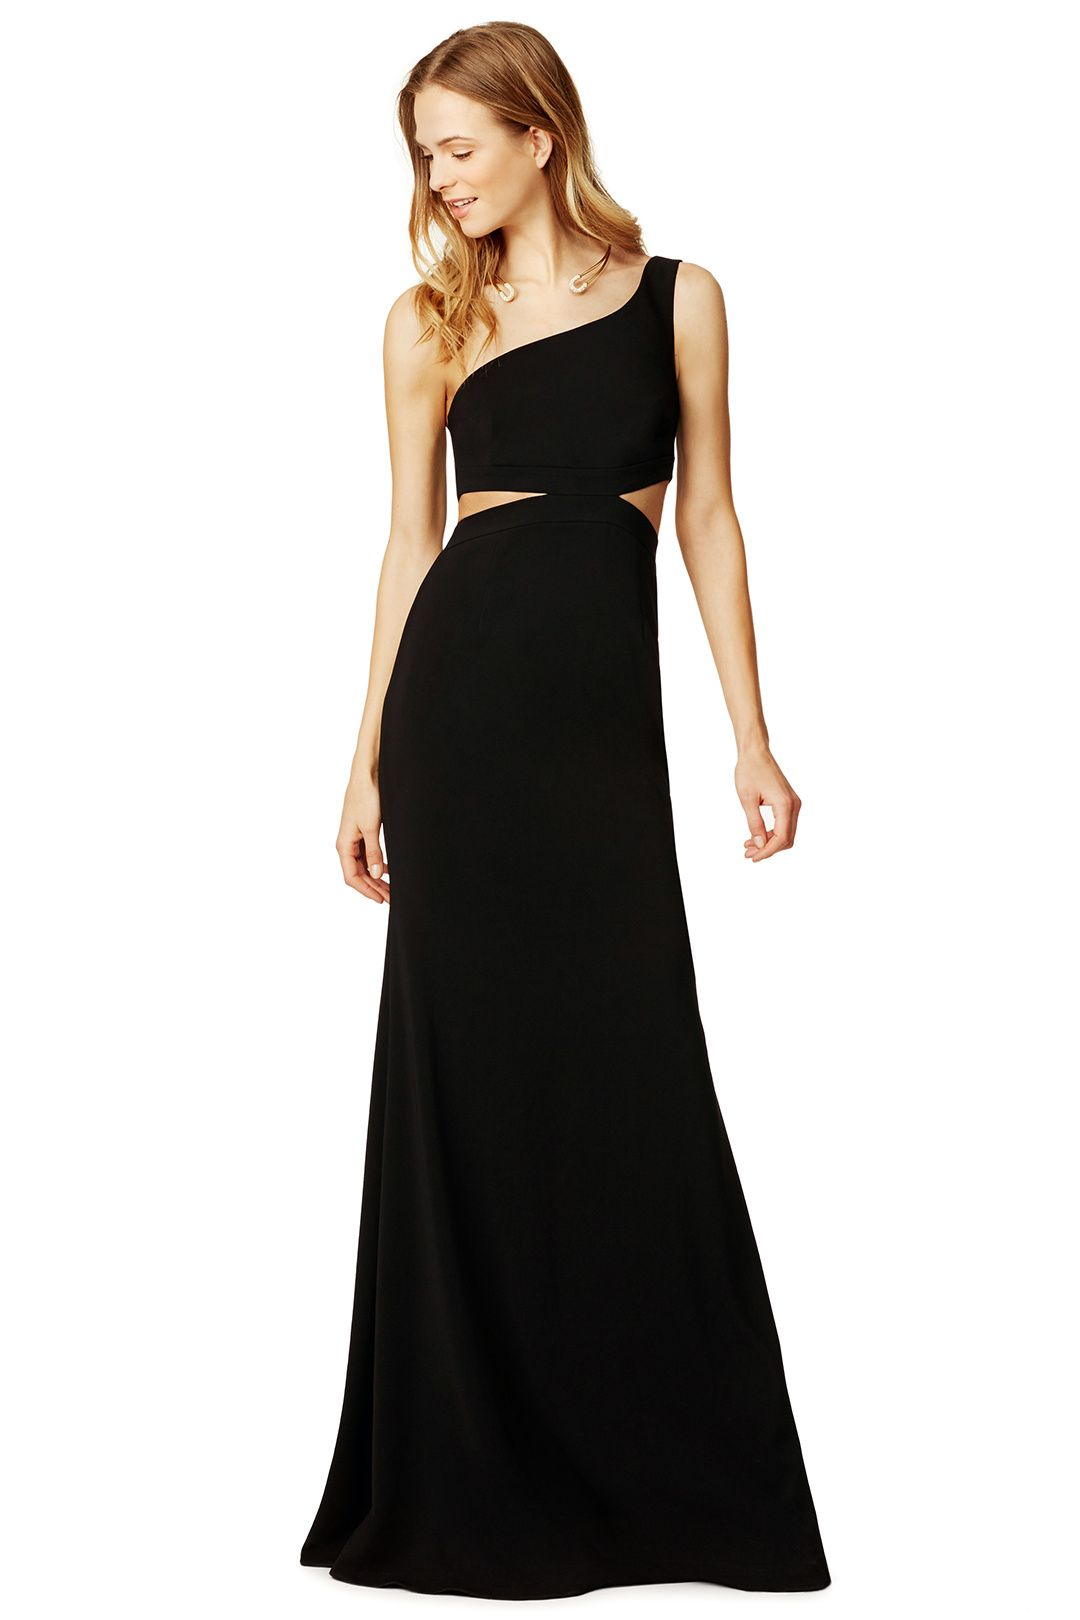 Jay Godfrey Clear View Gown Dresses Winter Dress Outfits Gowns